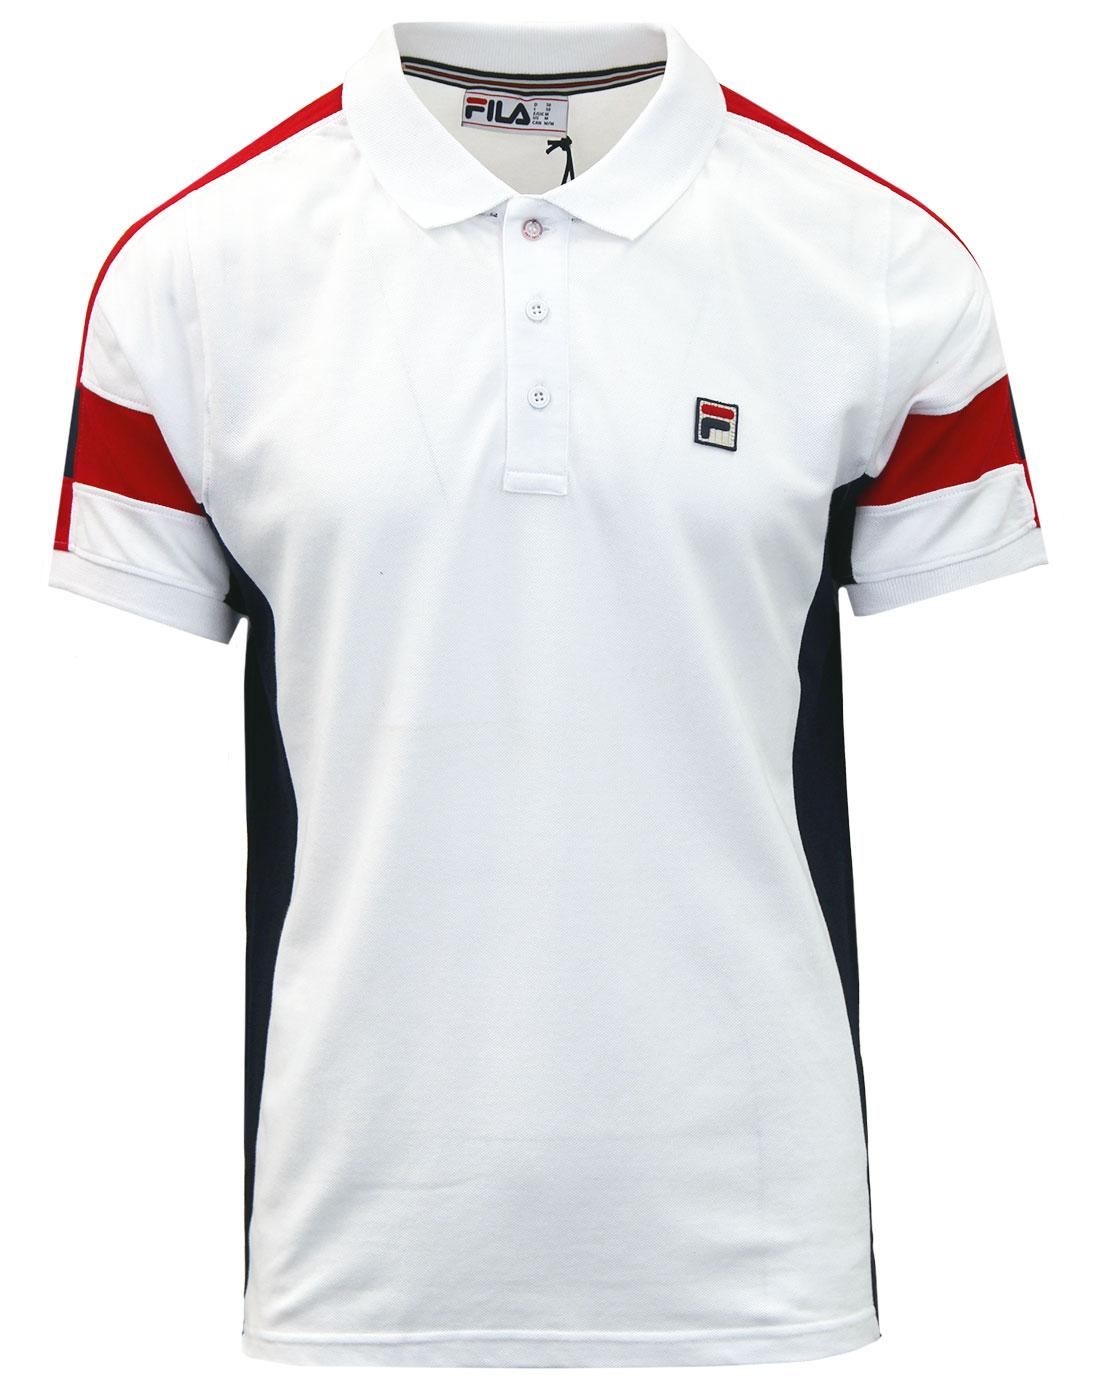 Prago FILA VINTAGE Retro Panel Pique Polo Top (W)